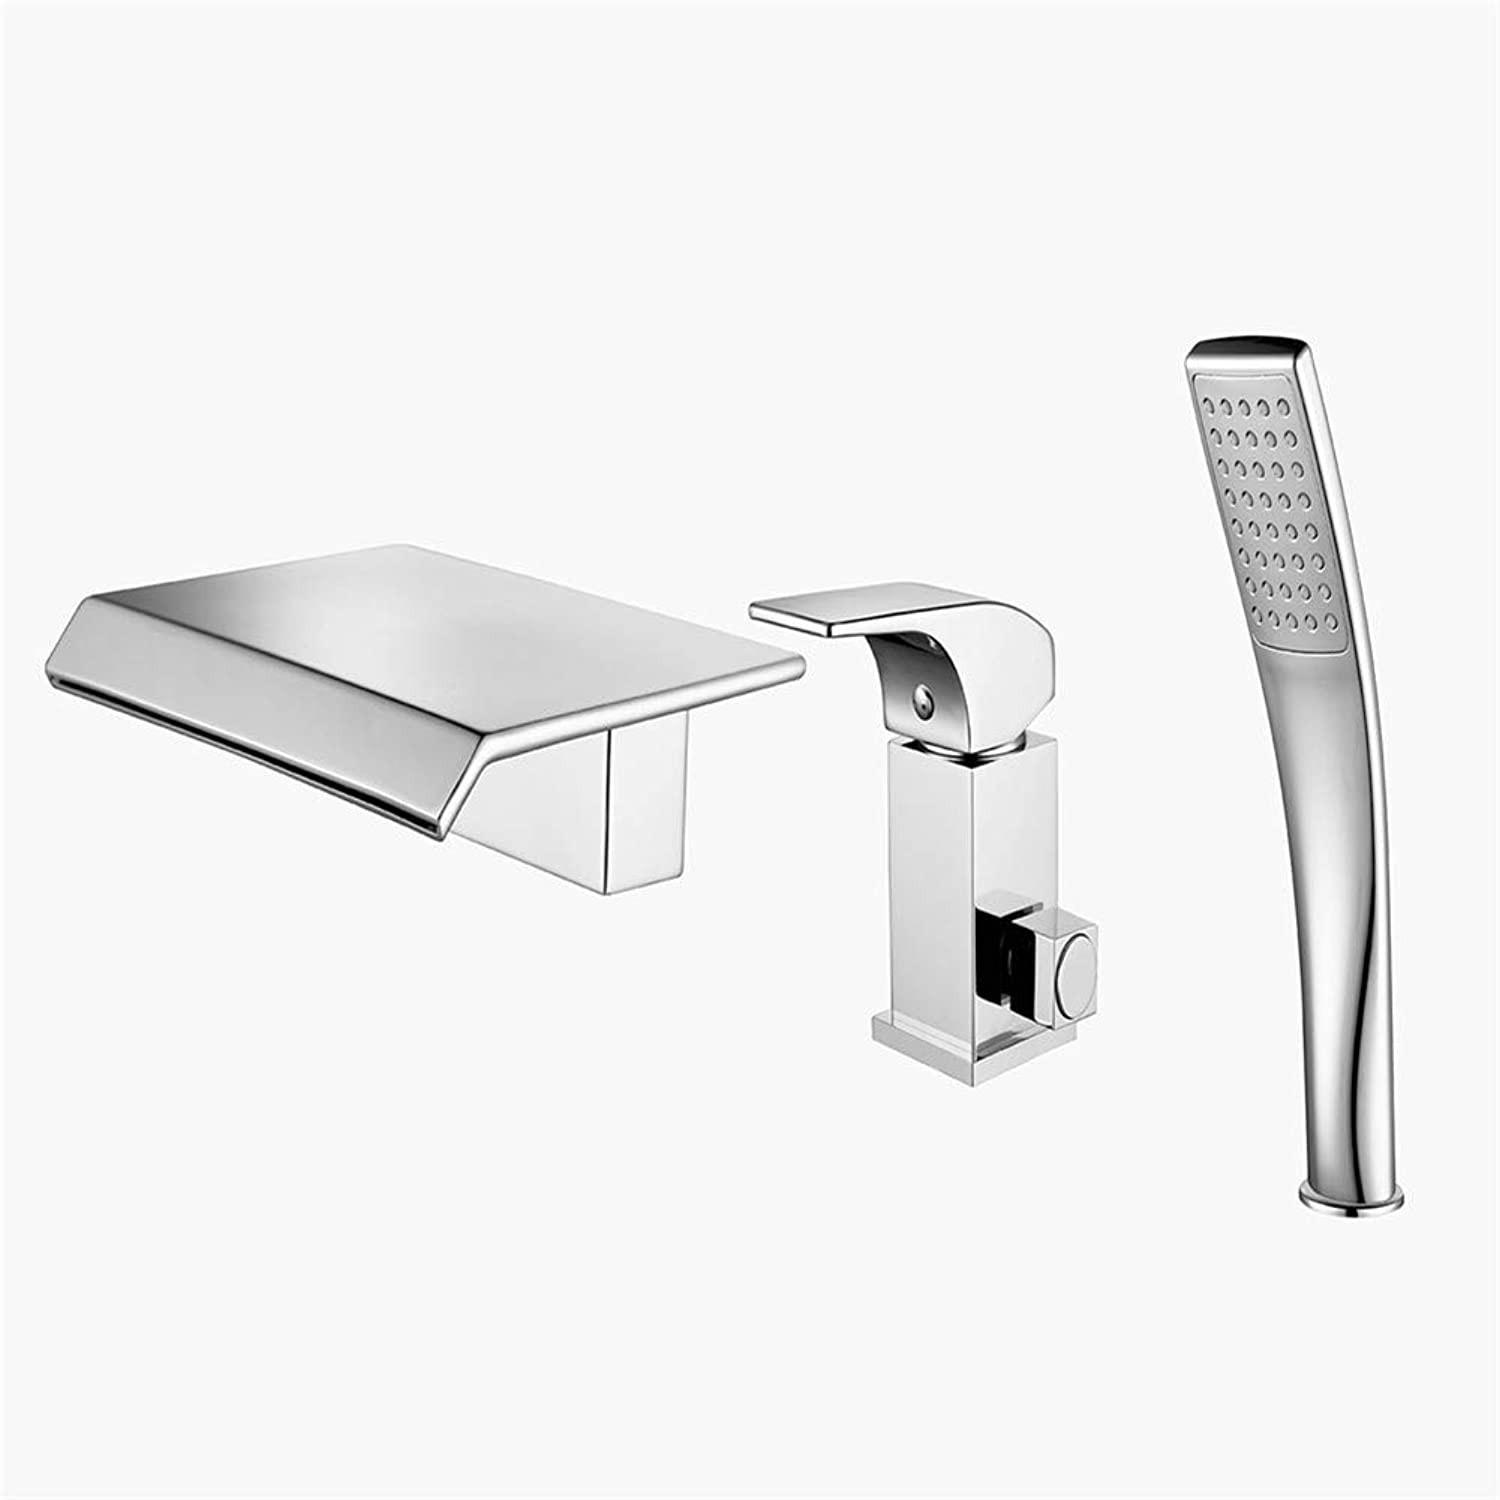 JIANGYE Luxury waterfall Bathroom Bath Taps with Shower Attachment Hot and cold water Mixers Polished Chrome Brass Bath and Shower Taps three piece